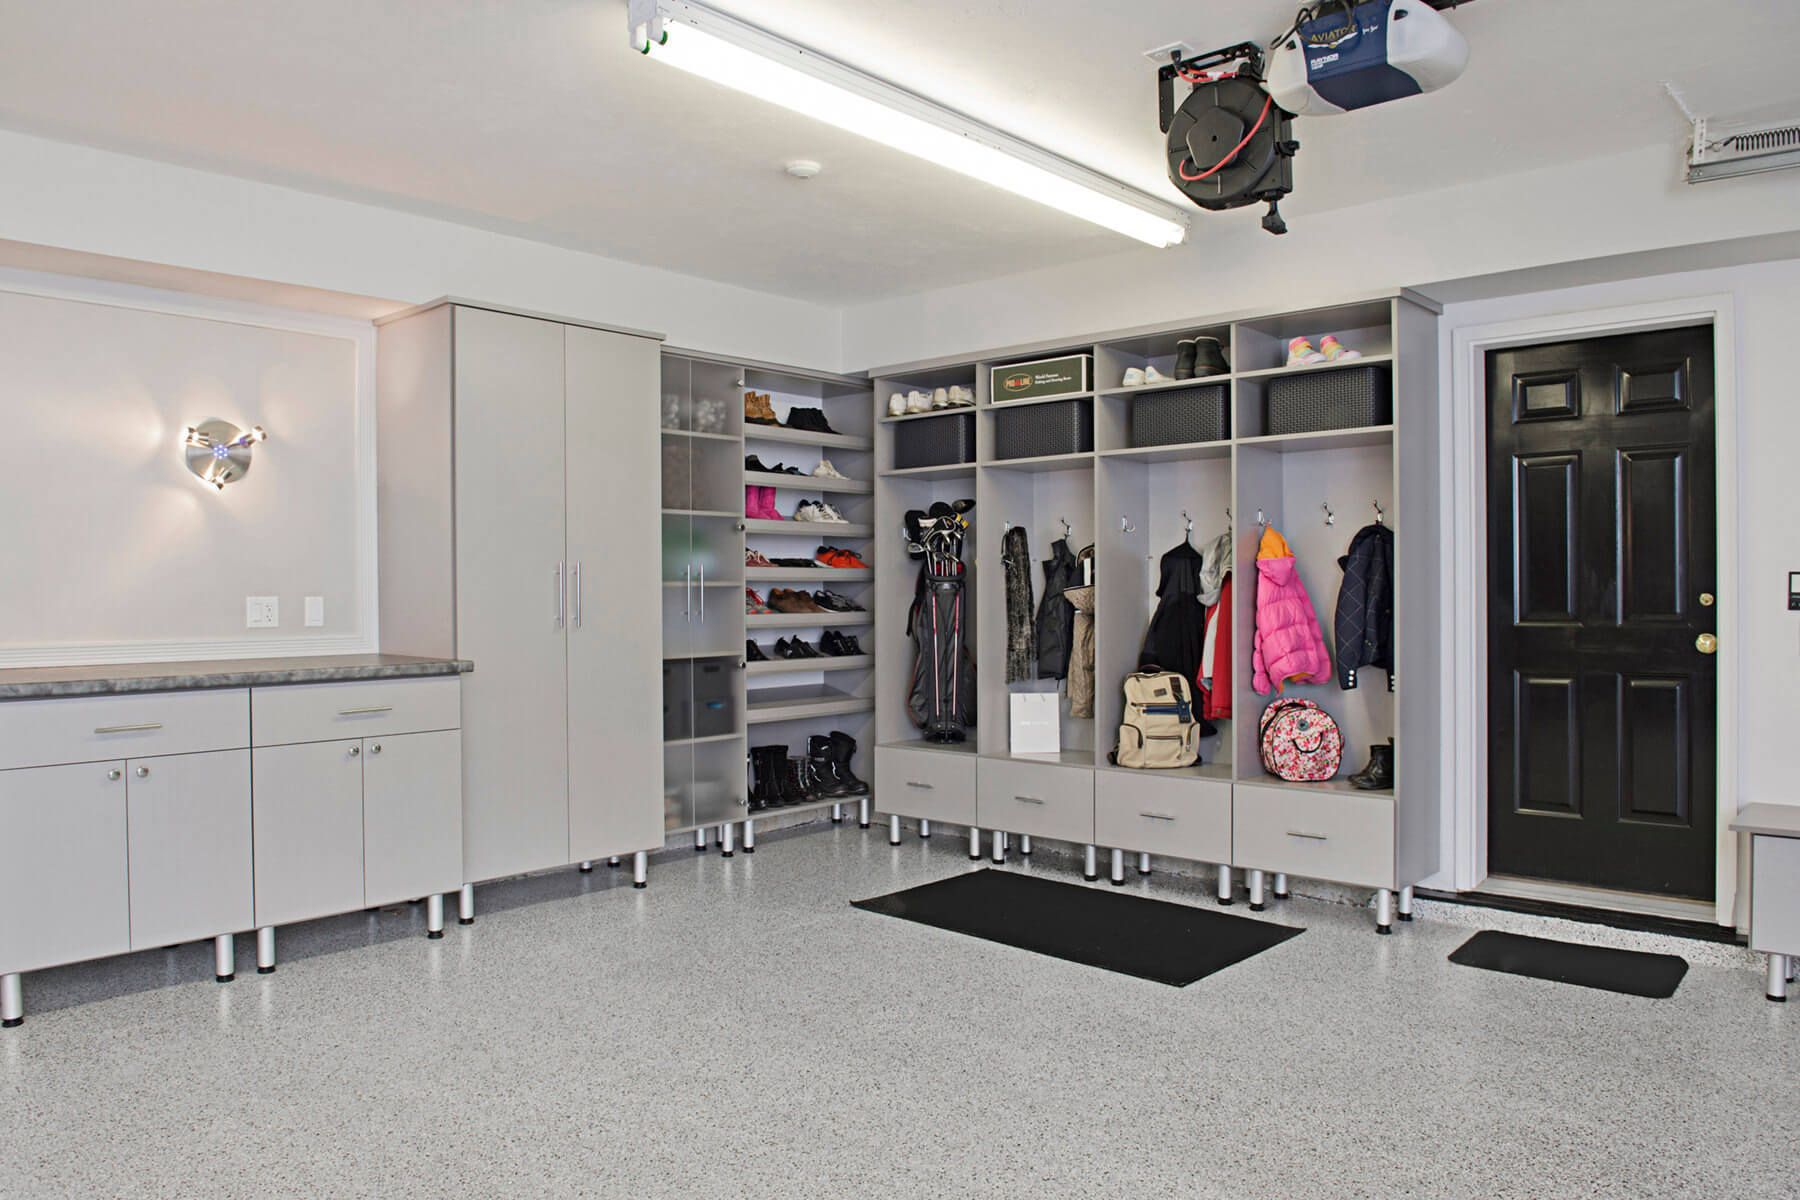 Thereus plenty of storage space for the entire family in this garage